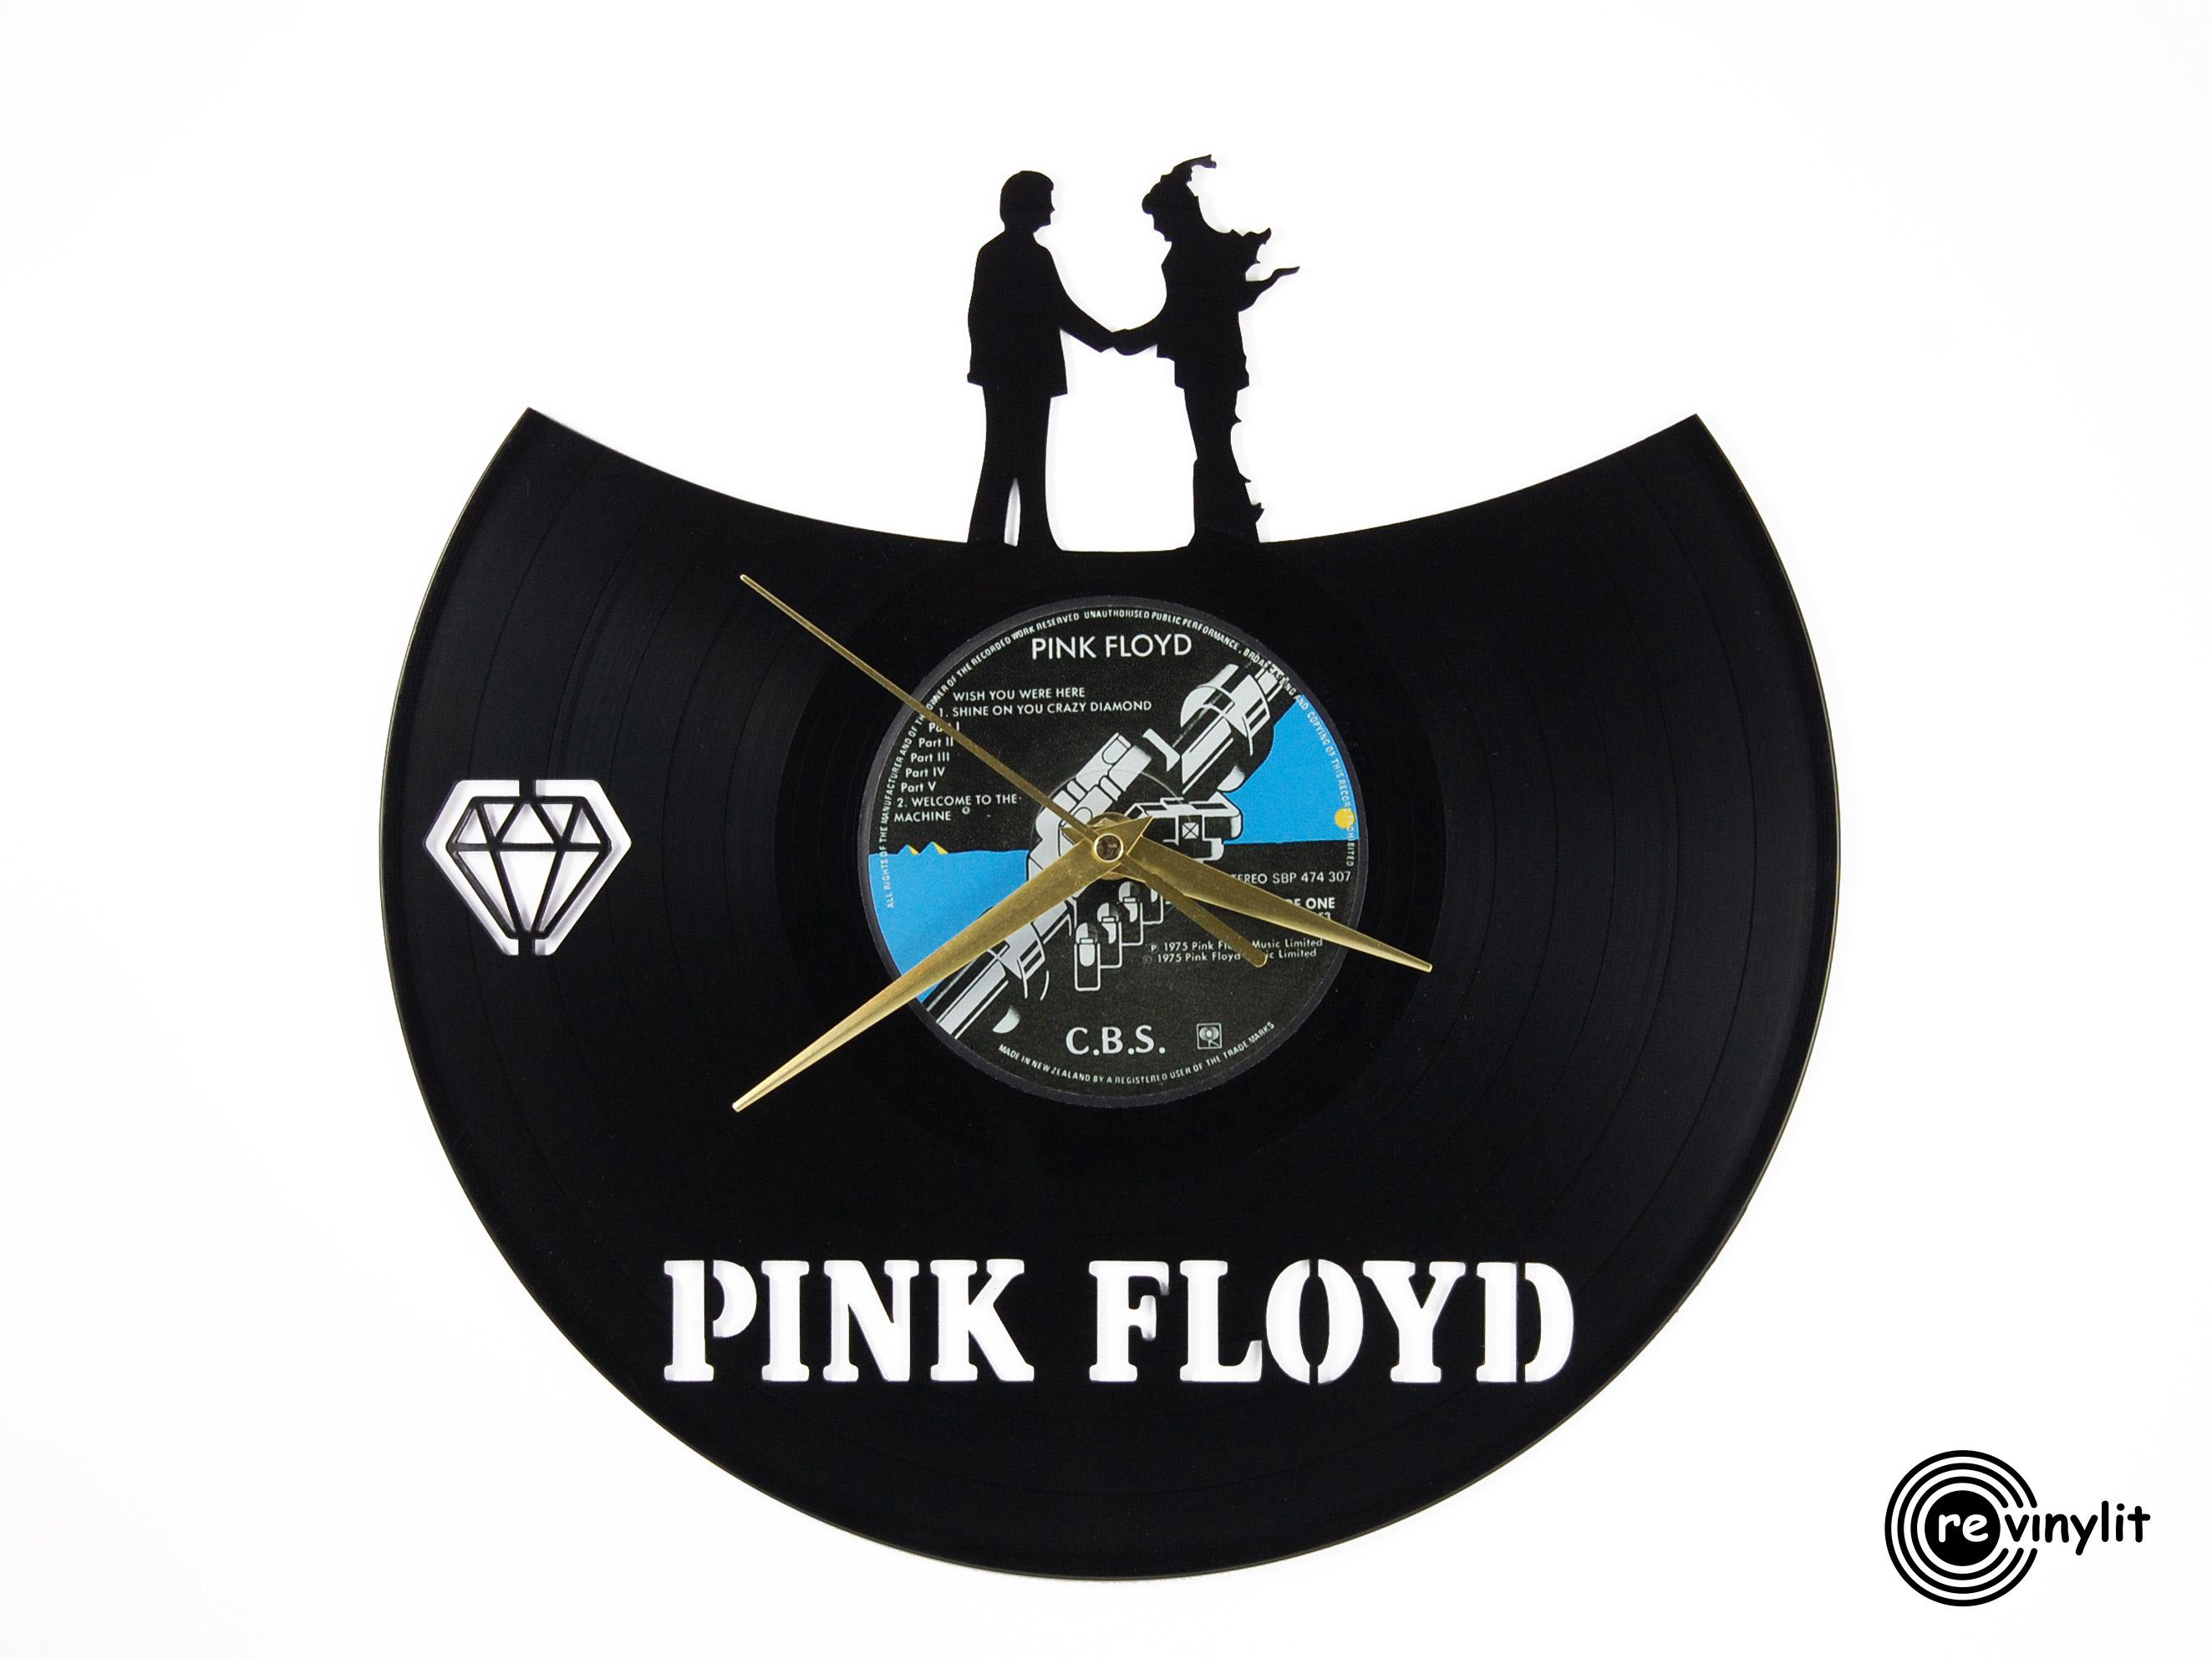 Pink Floyd Wish You Were Here vinyl record clock ||| Revinylit sold by  Revinylit vinyl record clocks